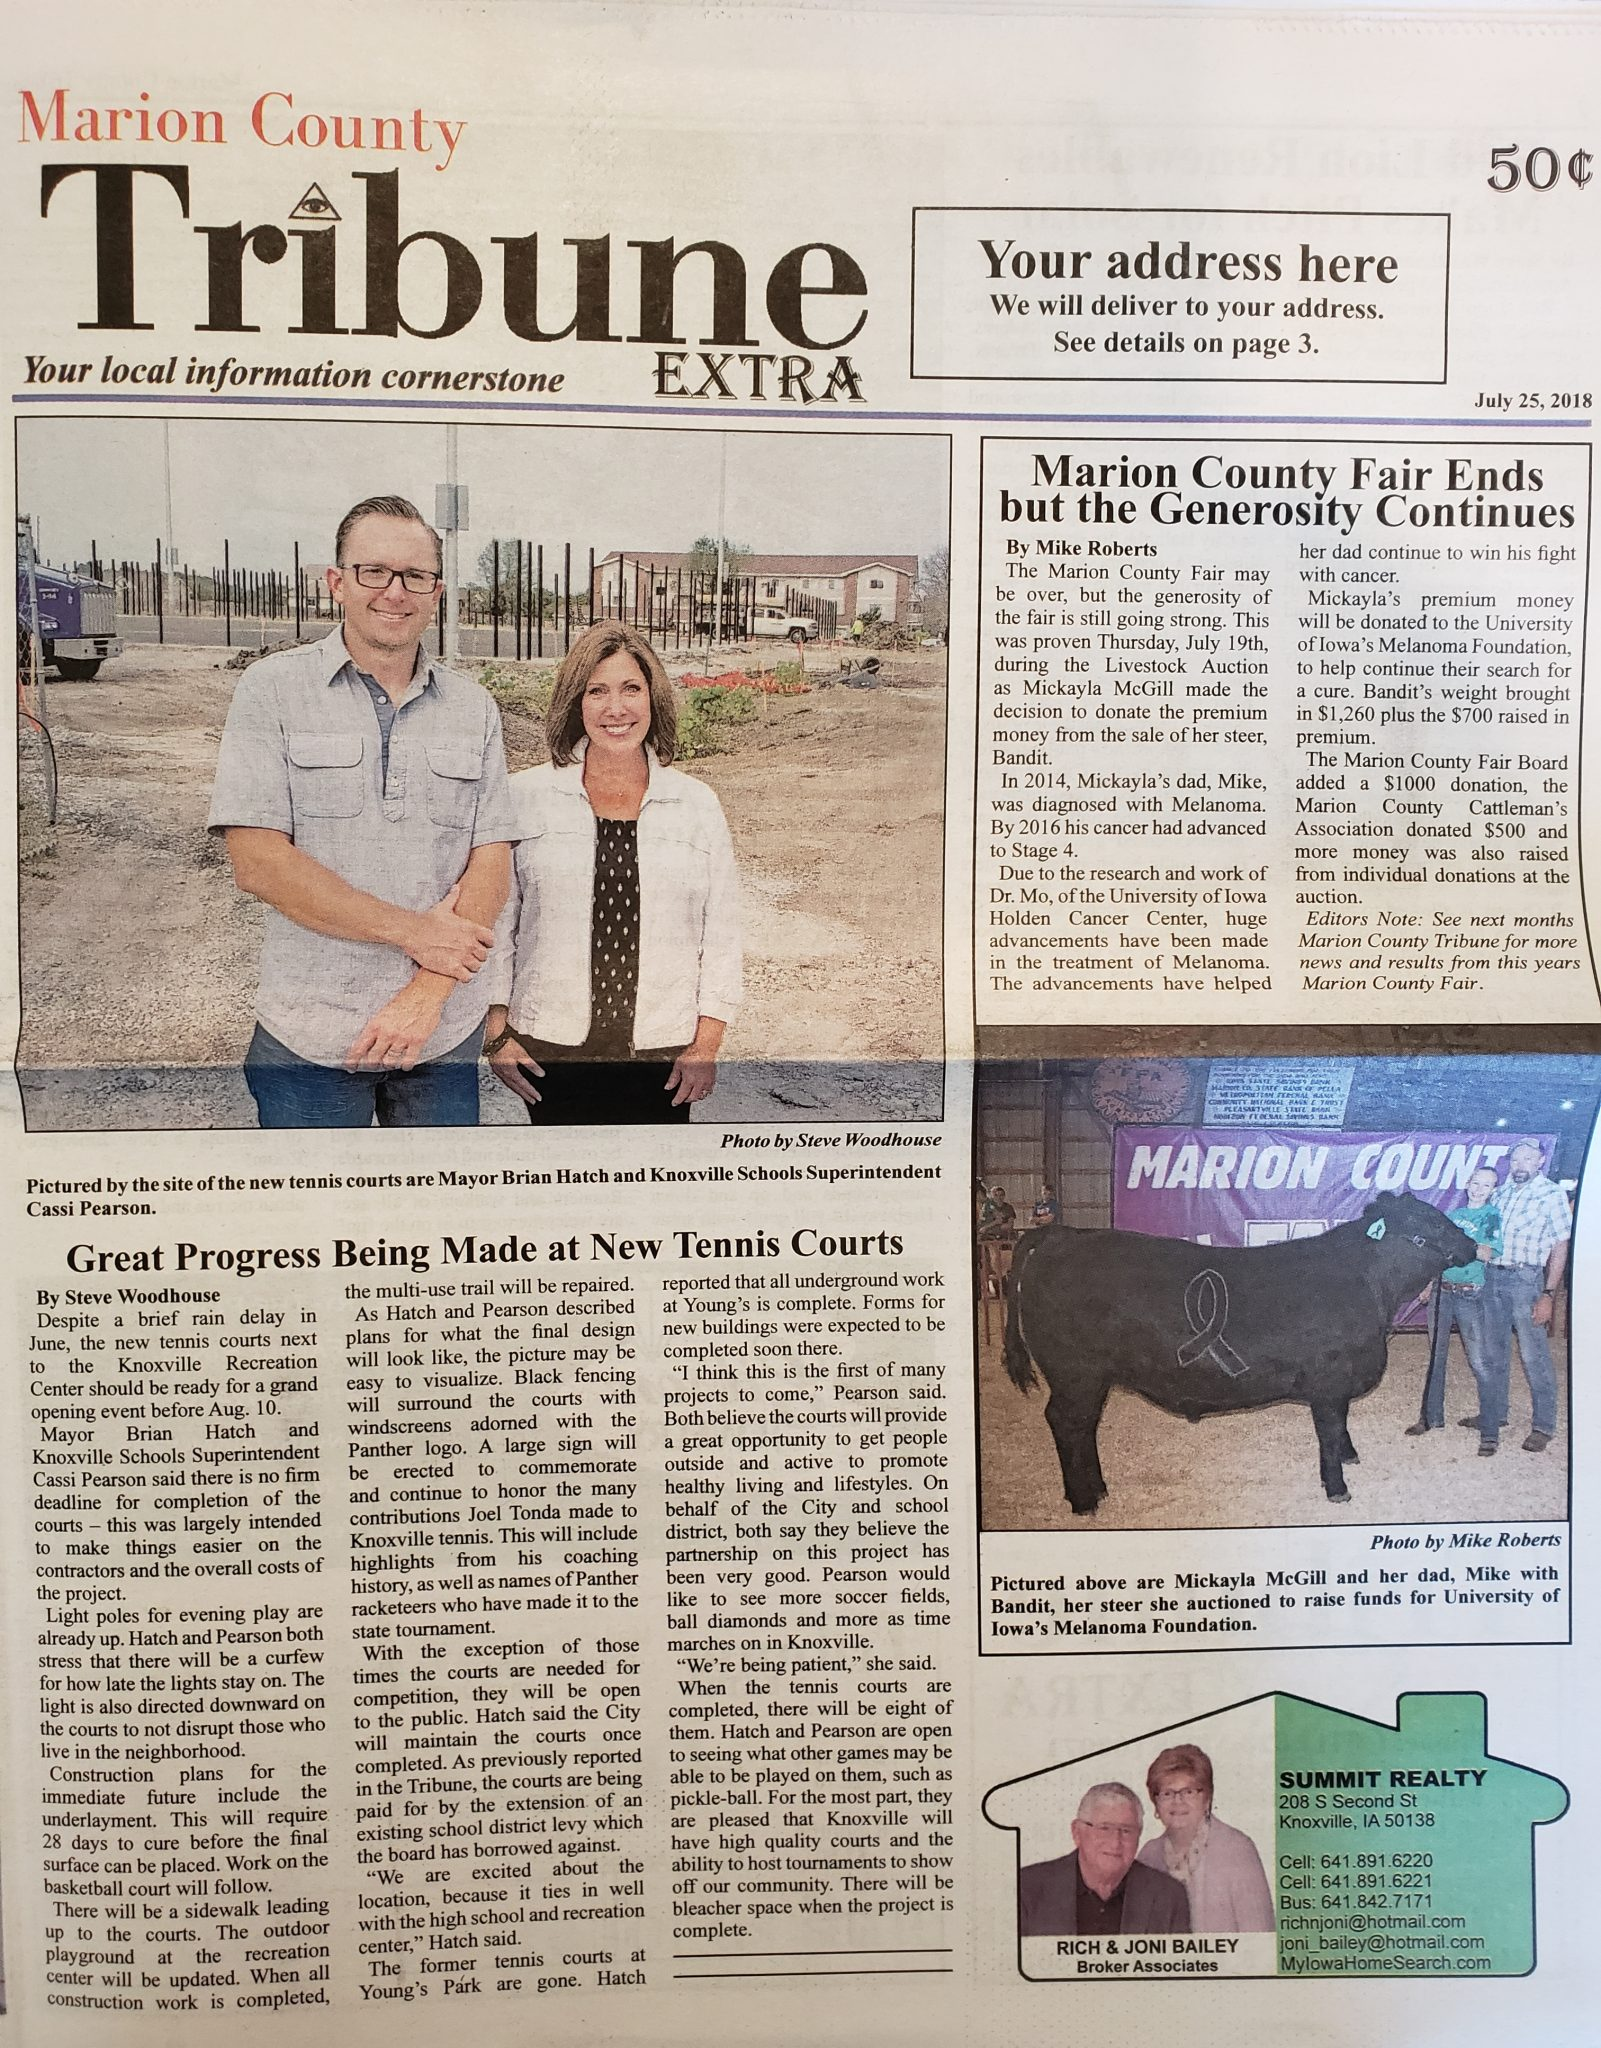 Now even more news to your home | Marion County Tribune